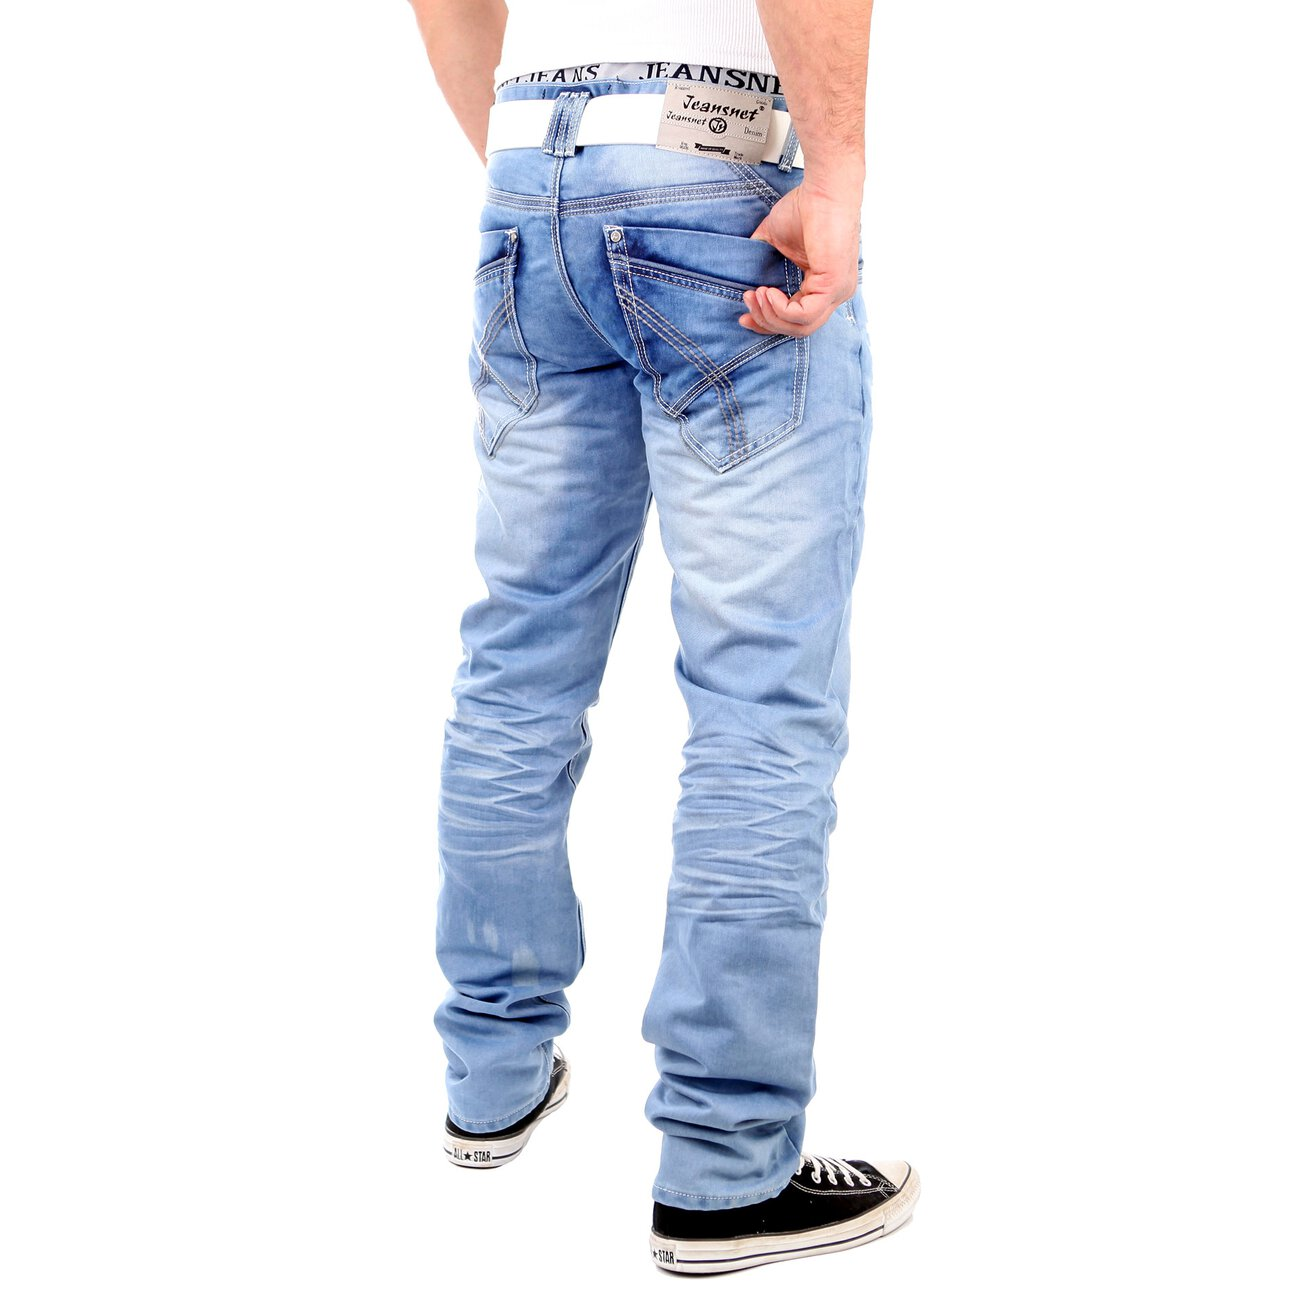 reslad jeans herren straight fit used look jeanshose hellblau. Black Bedroom Furniture Sets. Home Design Ideas